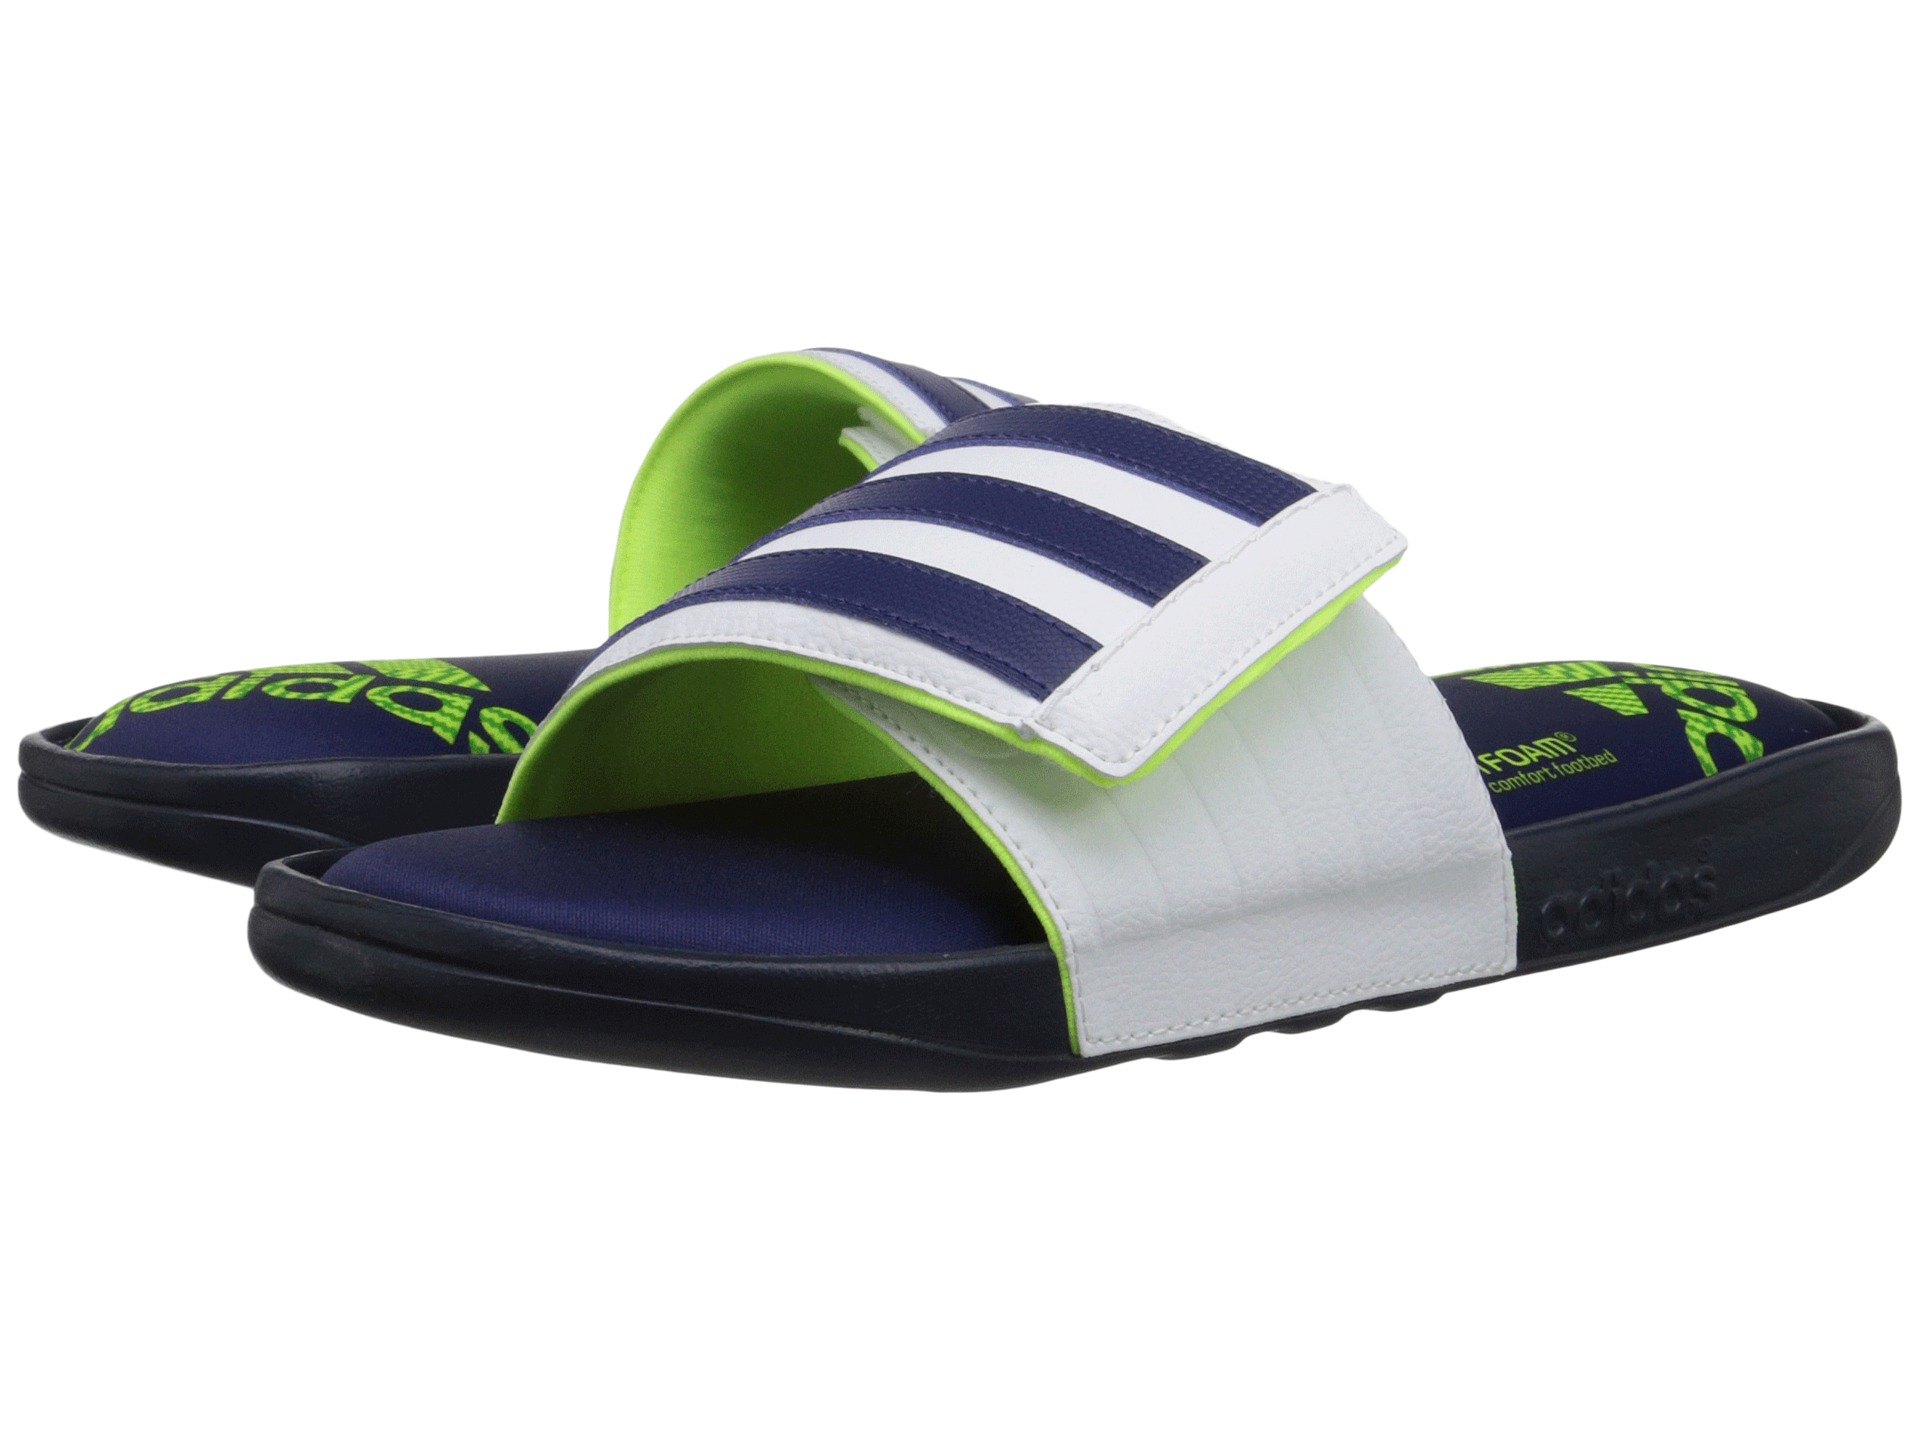 00ef15e62bbb Lyst - adidas Adissage Comfort Ff in White for Men